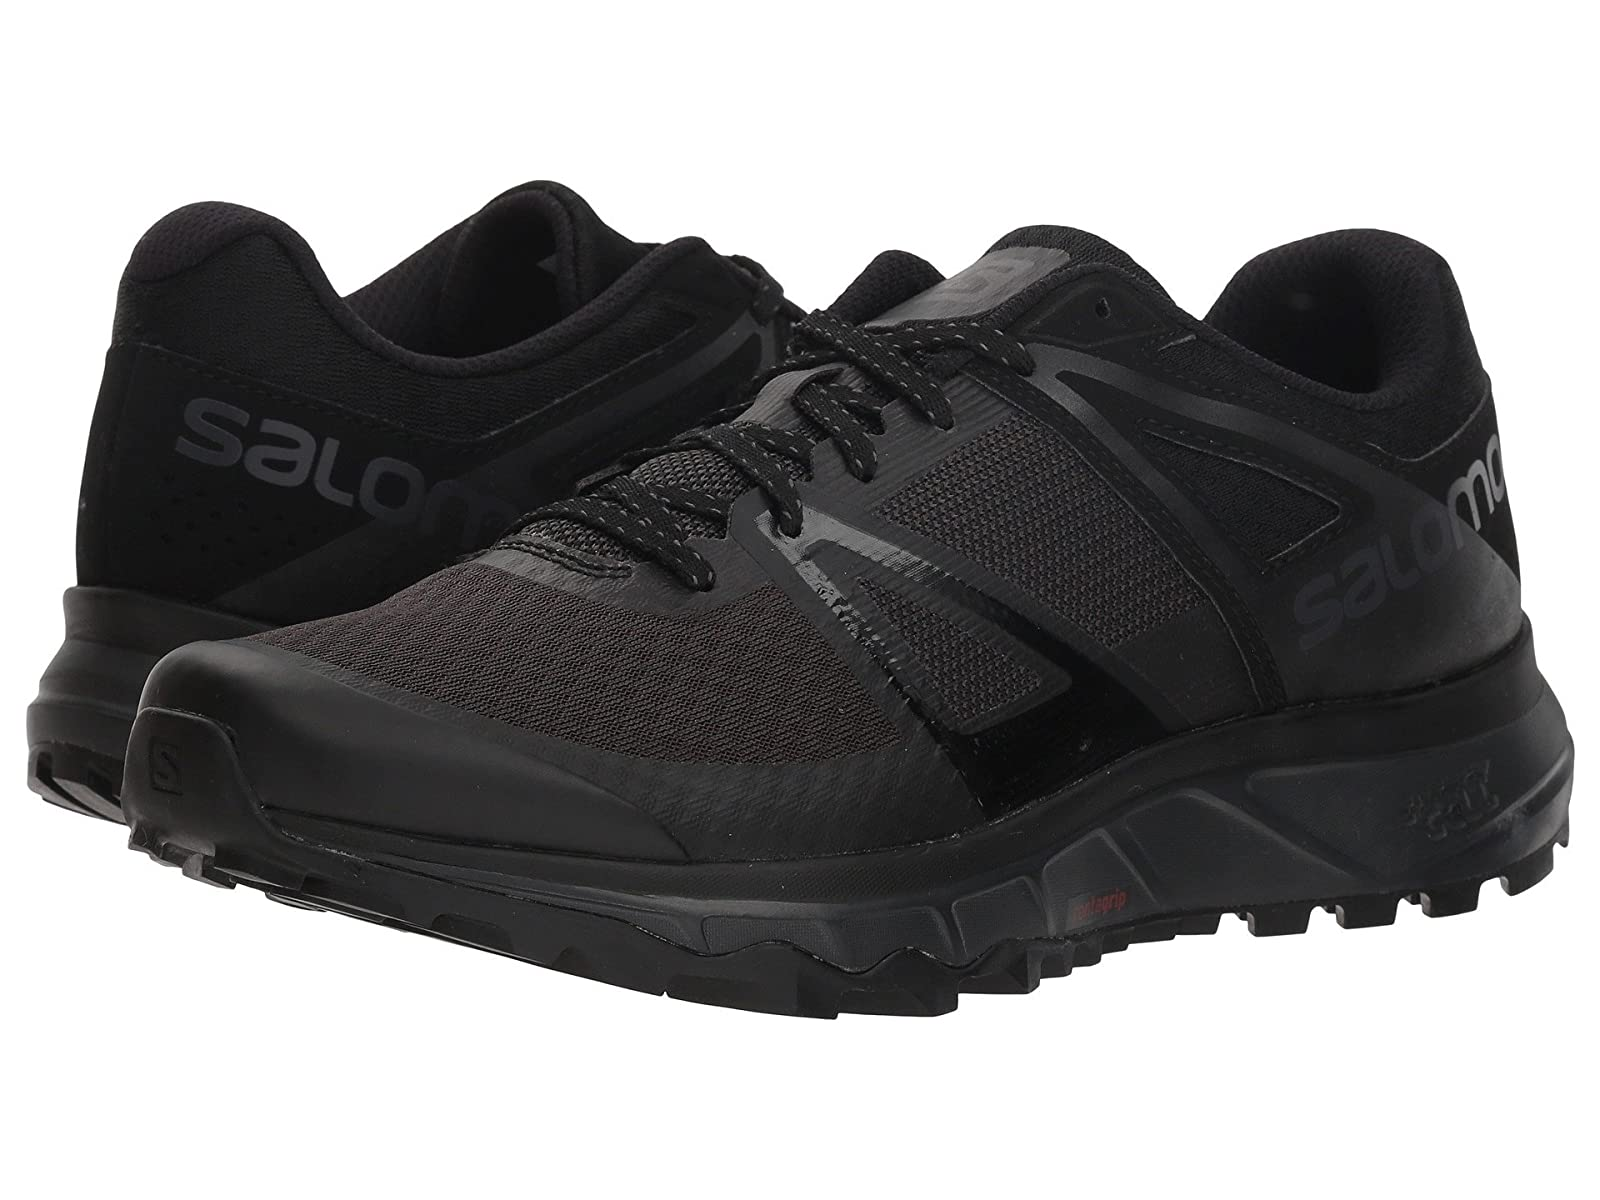 Salomon TrailsterAtmospheric grades have affordable shoes